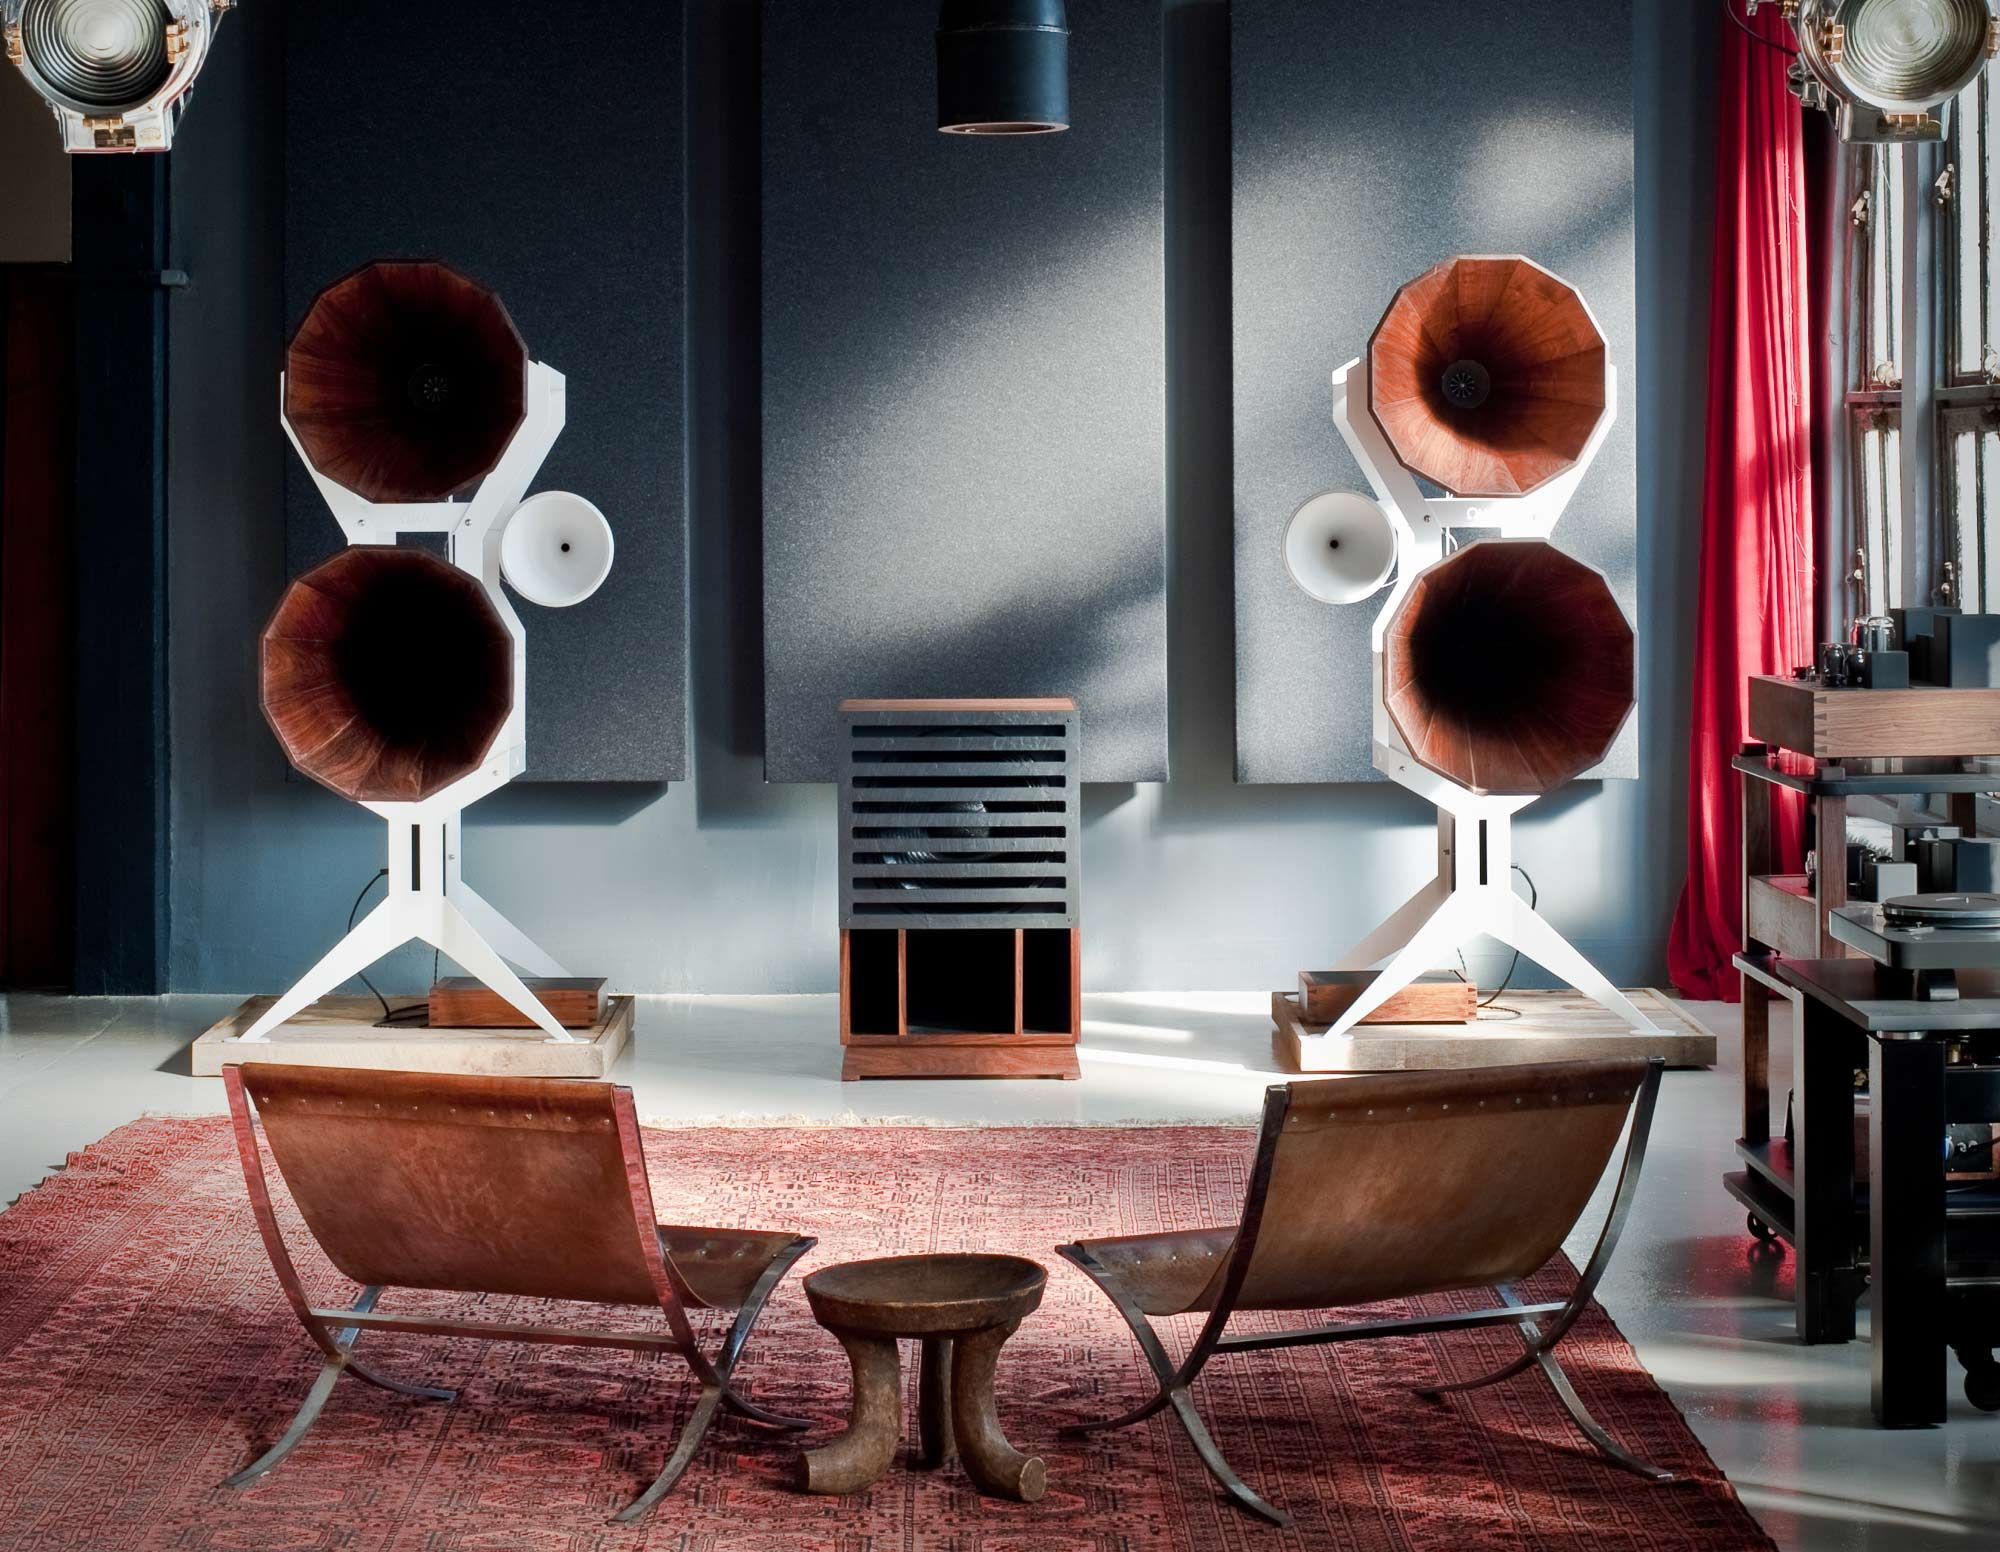 Oswalds mill audio brooklyn showroom audio pinterest audio jonathan weiss fabulous oswaldsmill audio dumbo showroom was featured in a recent episode of the blueprint on jay zs lifetimes malvernweather Choice Image